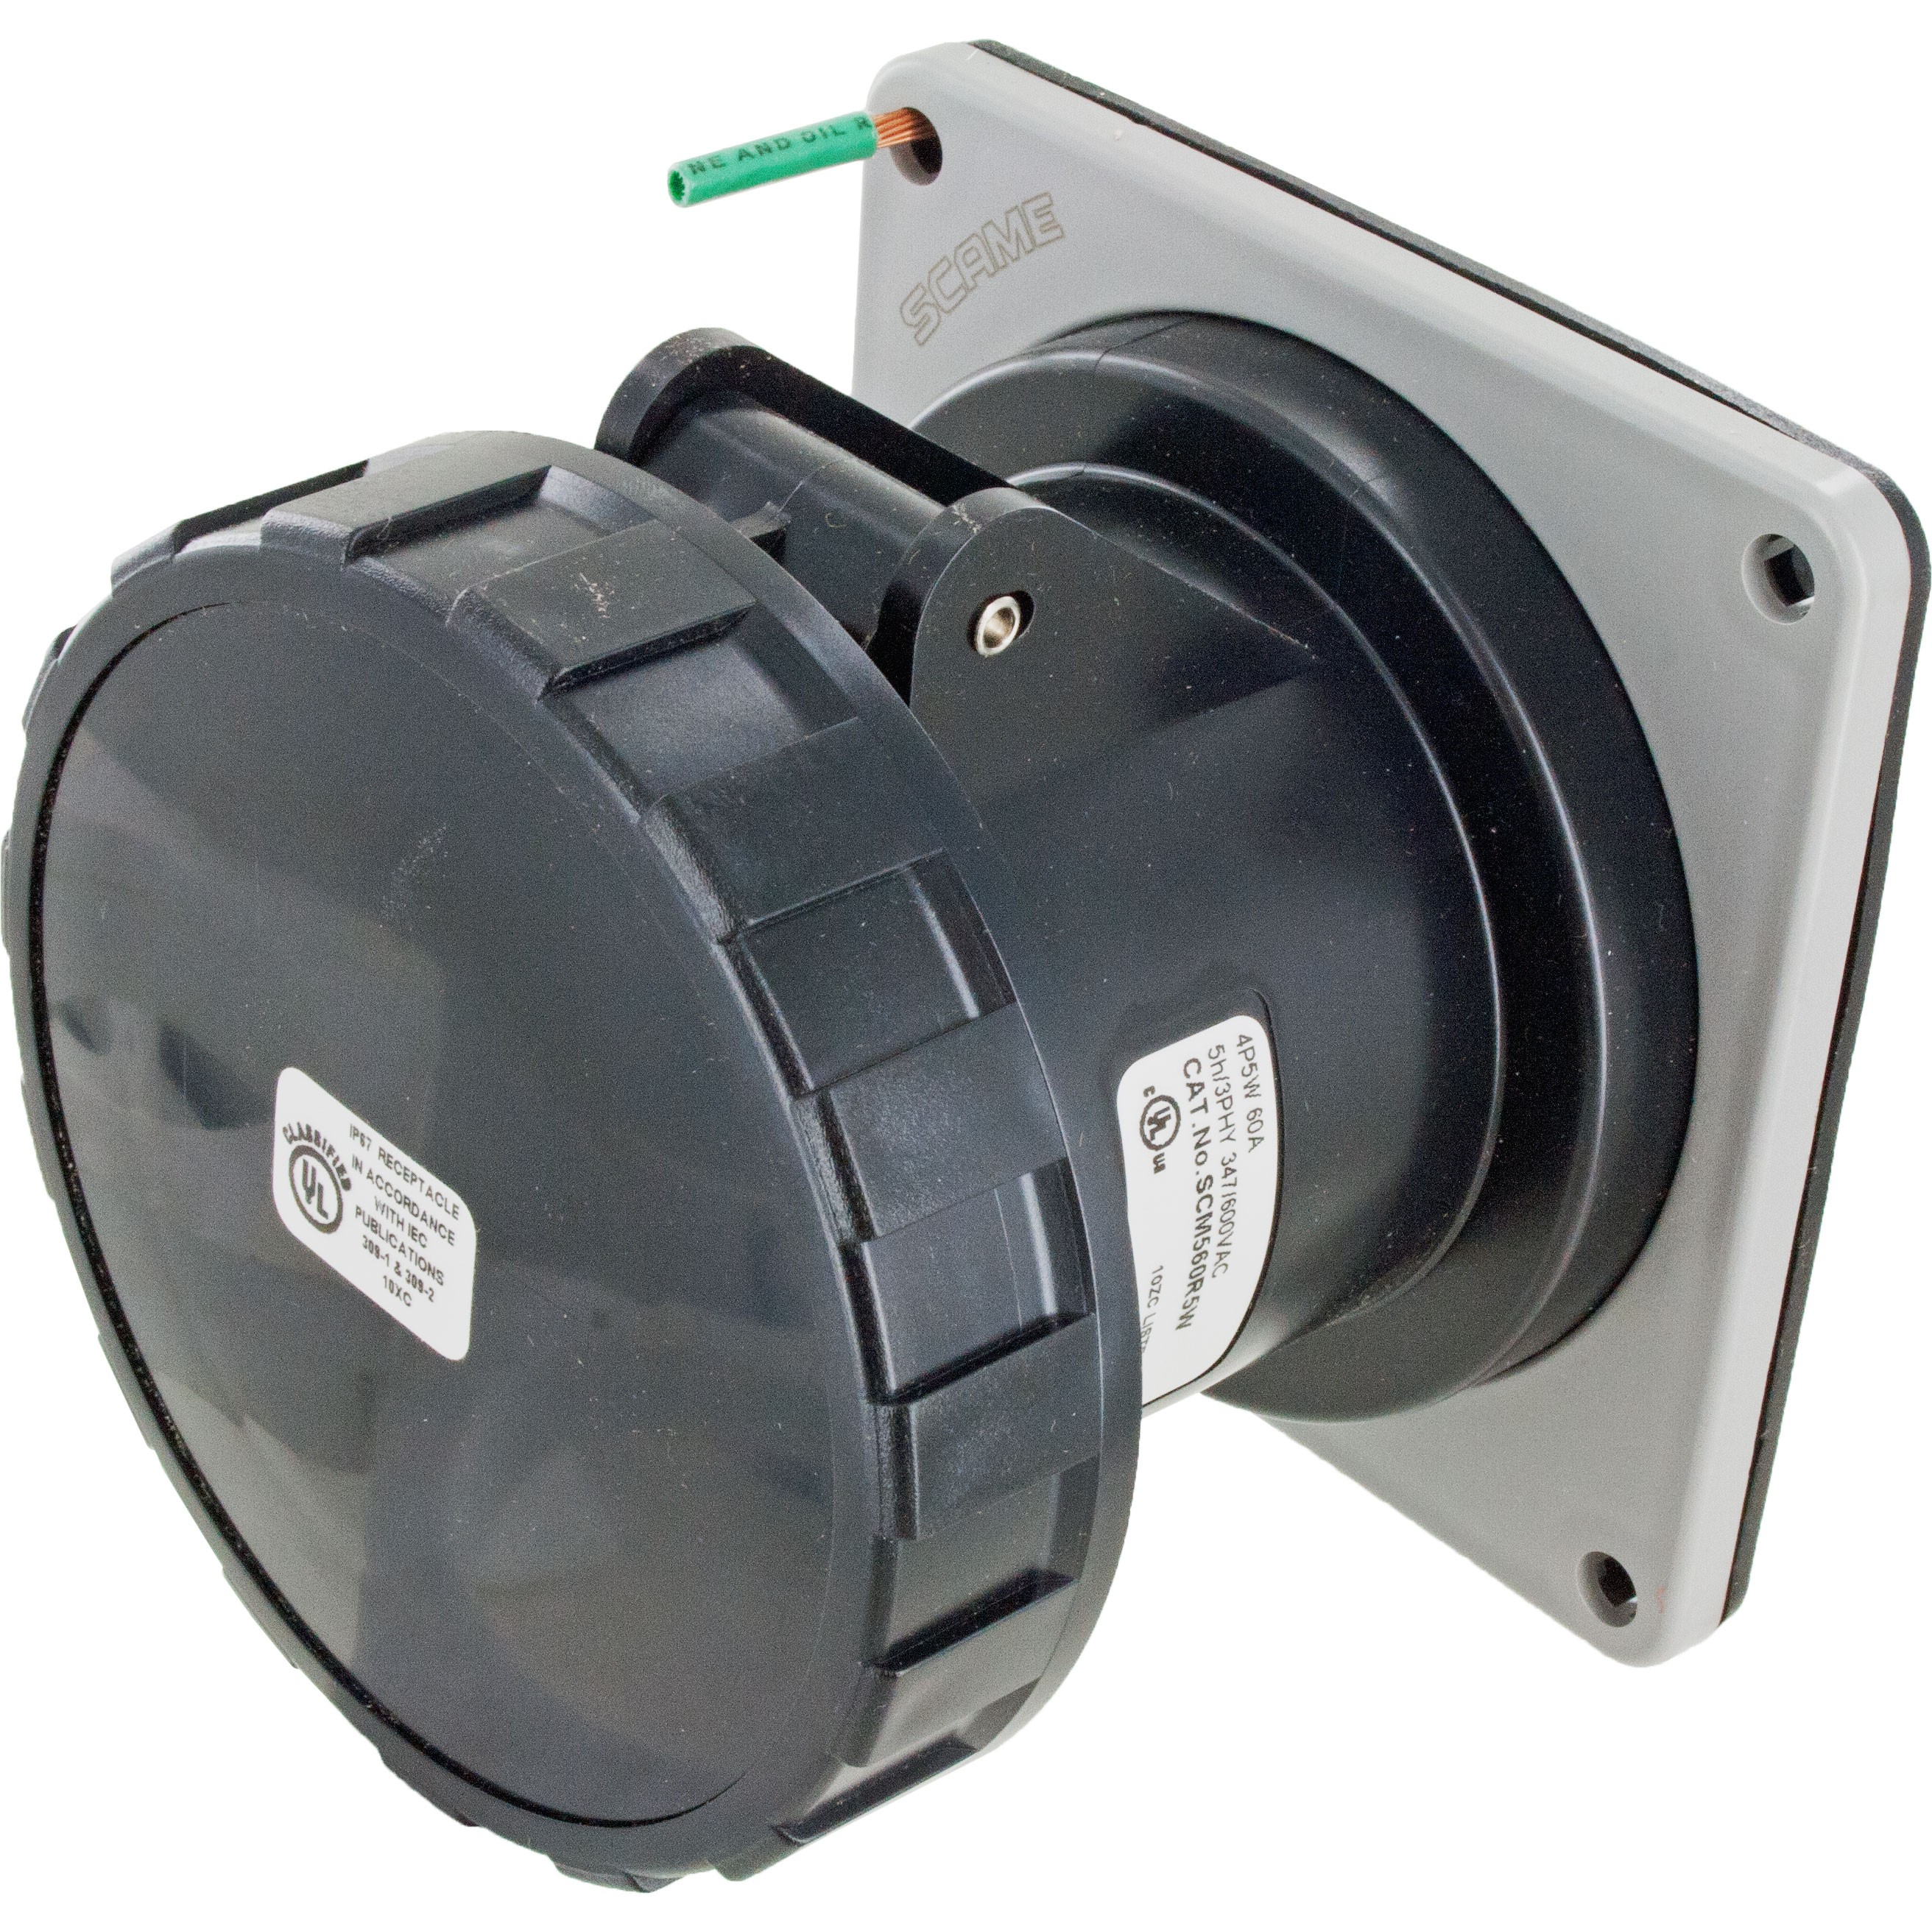 560R5W Pin And Sleeve Receptacle 60 Amp 4 Pole 5 Wire